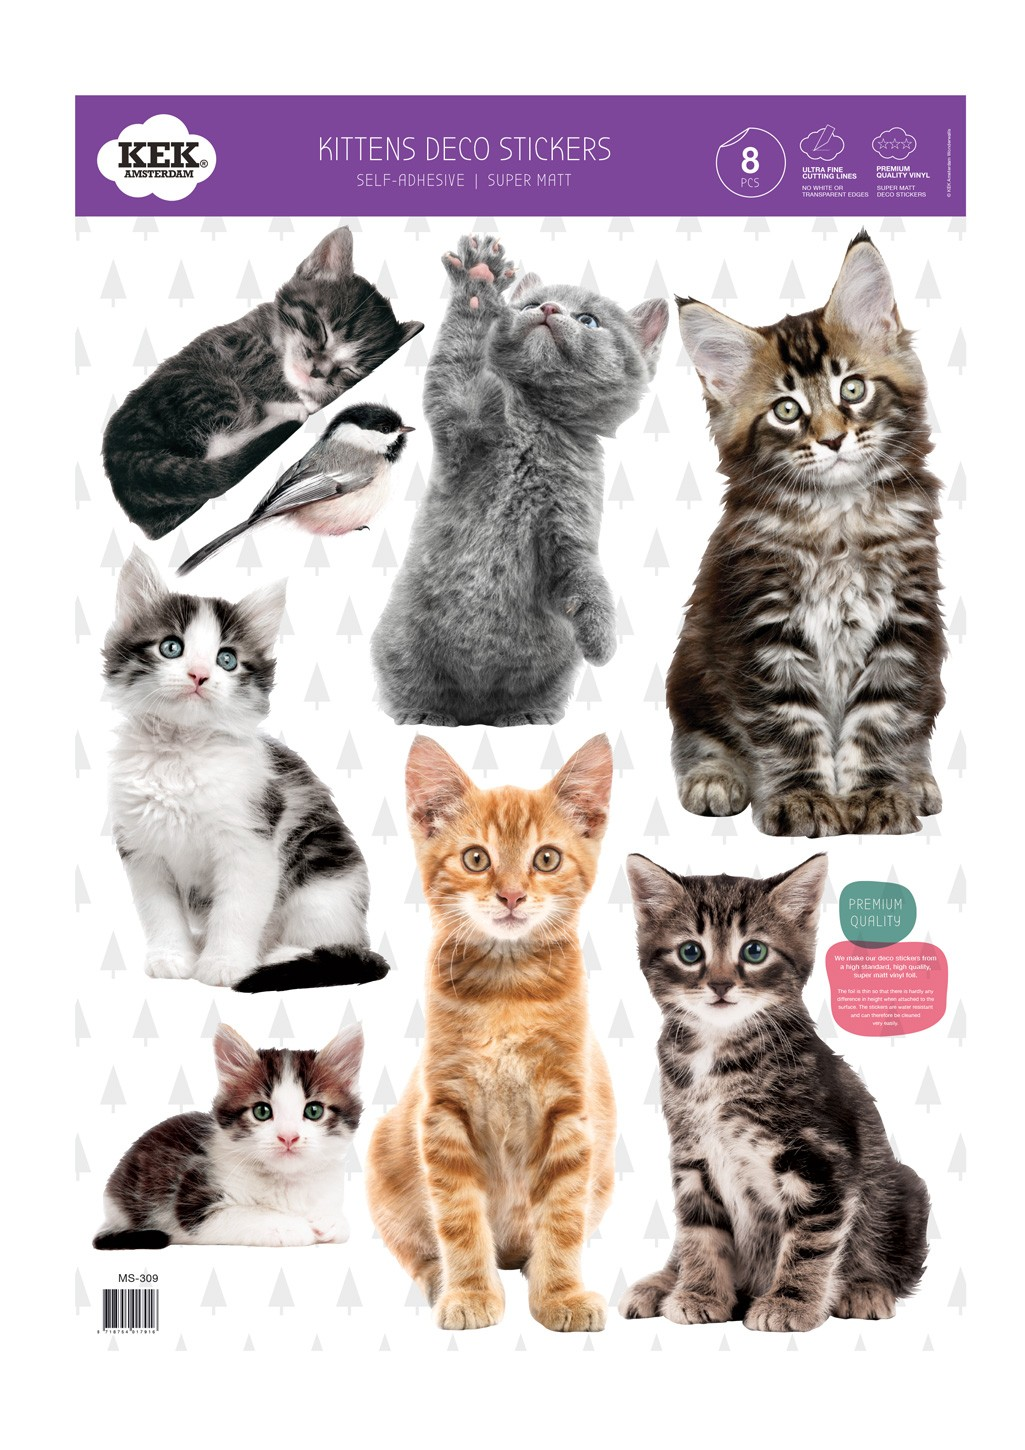 Kek Amsterdam Muurstickers Kittens (8 Wall Stickers), 42 x 59 cm (8 wall stickers)-8718754017916-31